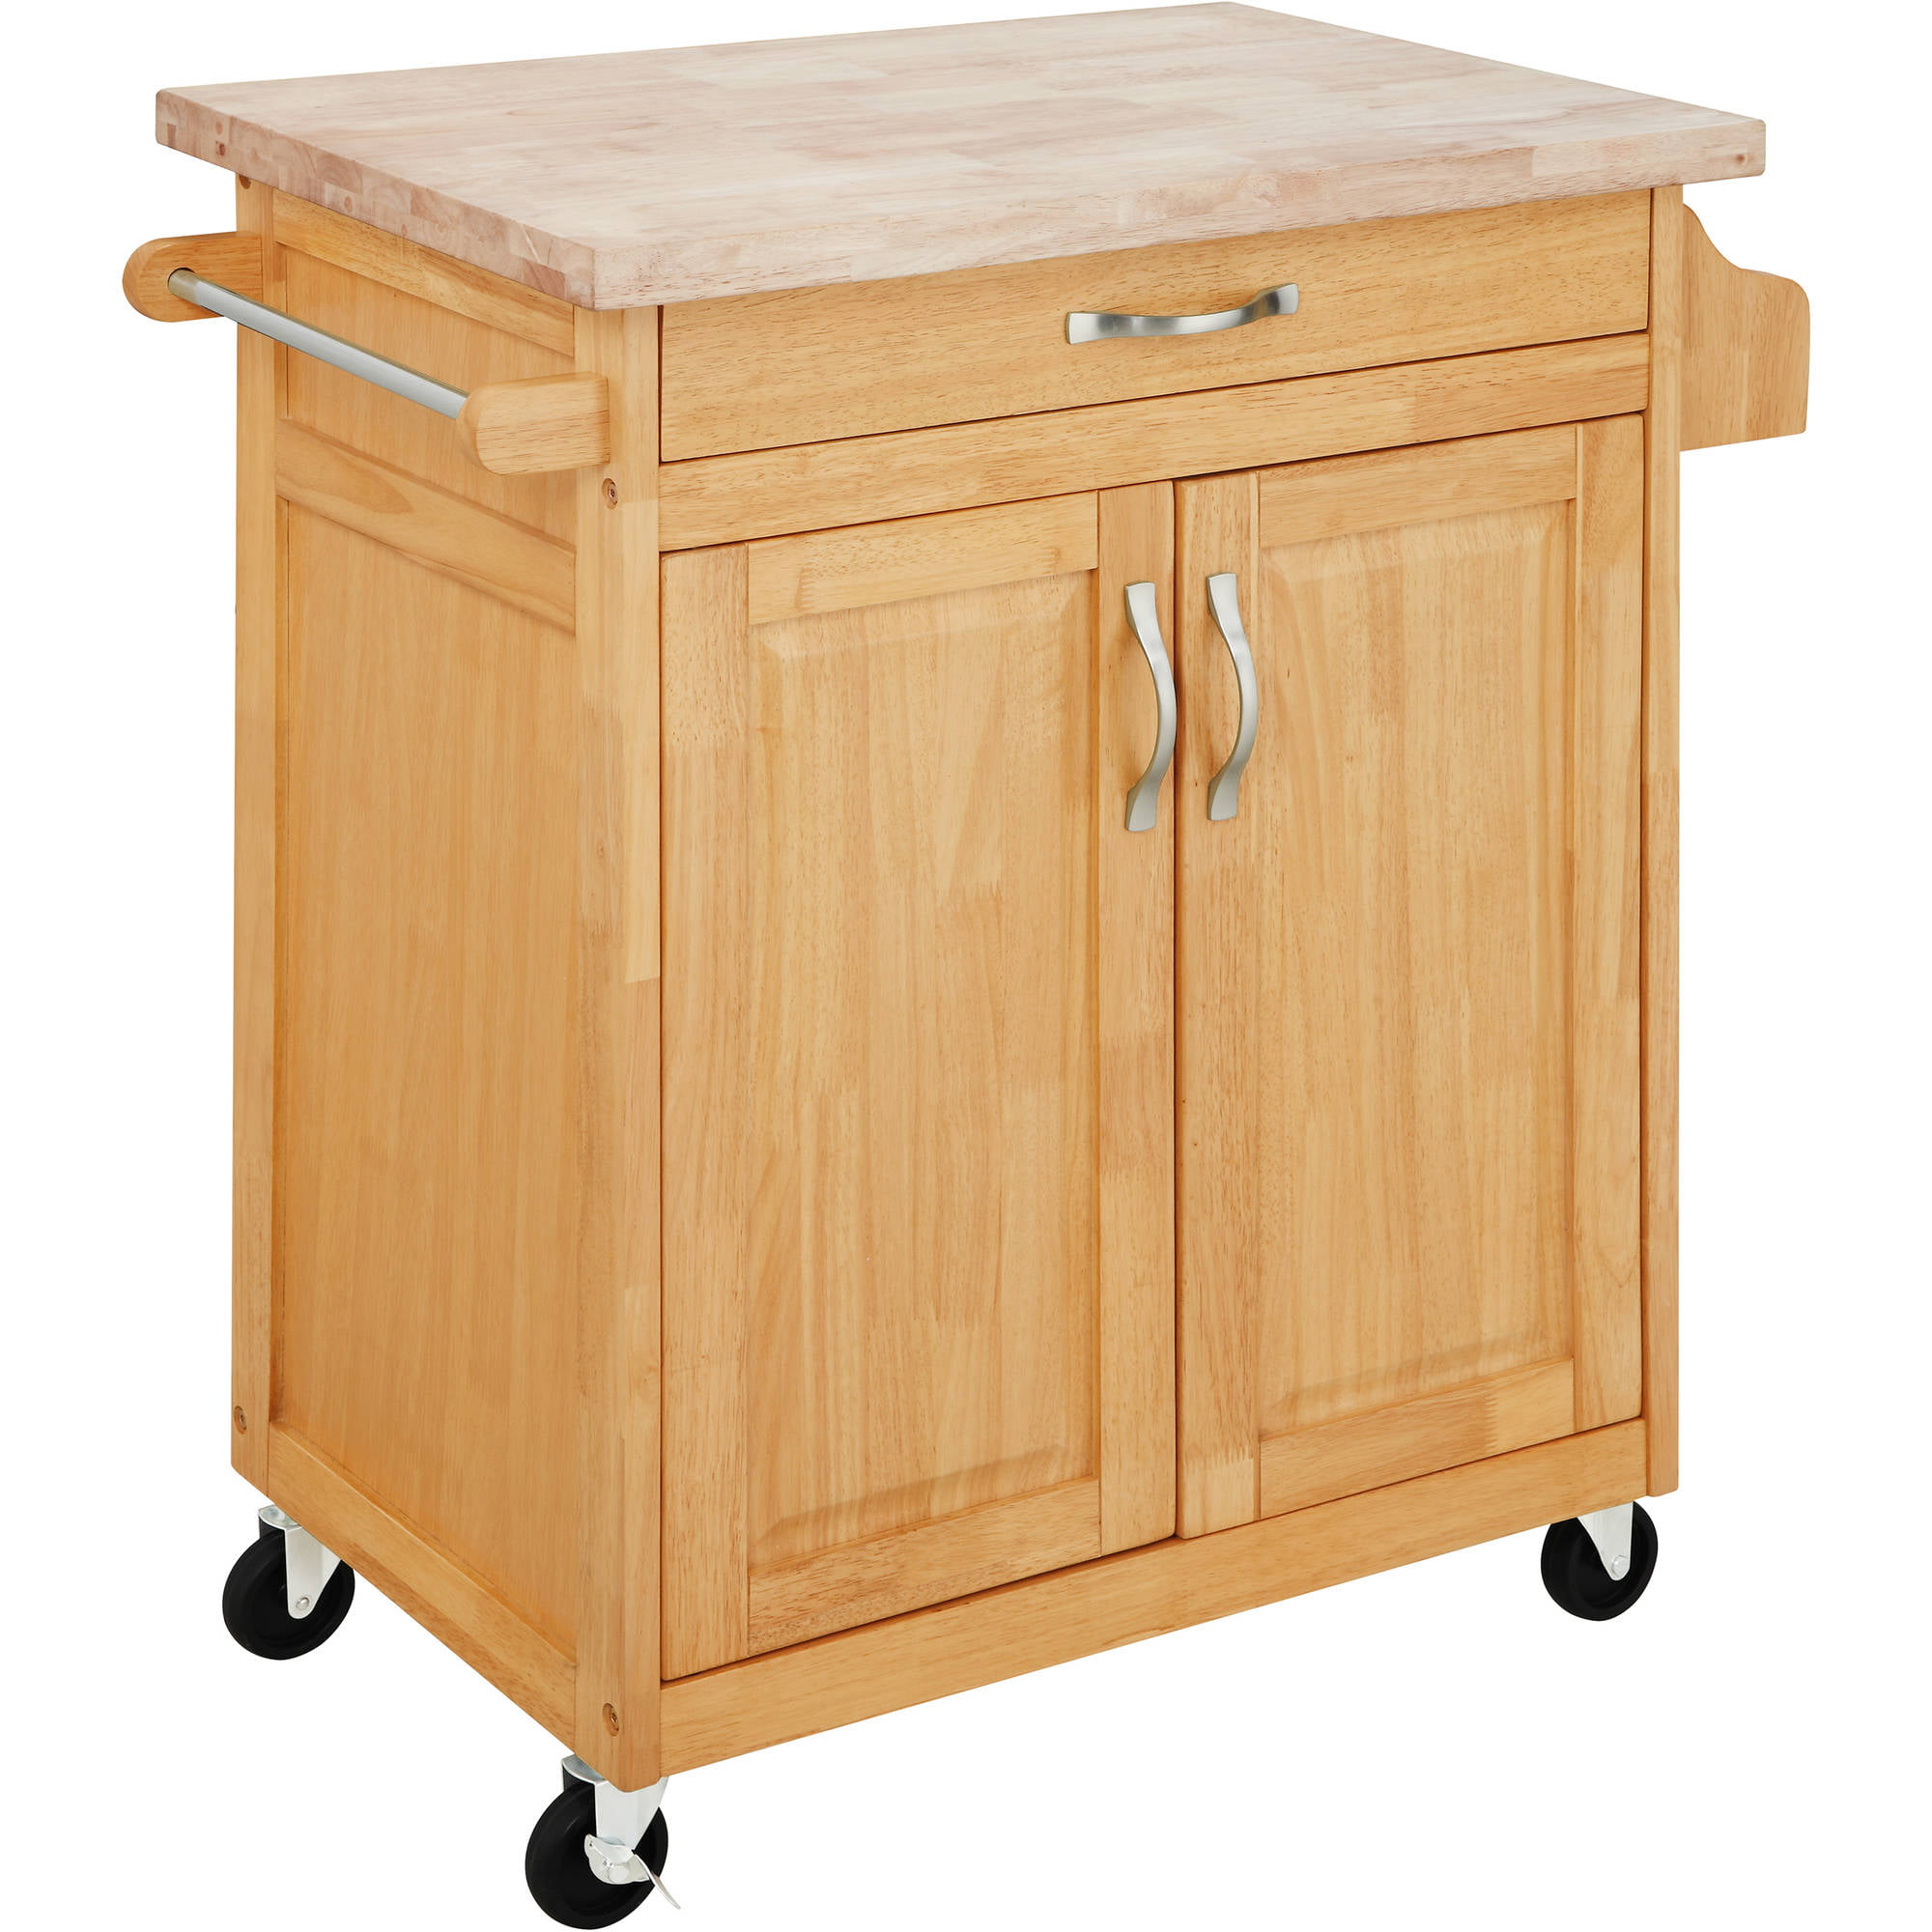 Mainstays Kitchen Island Cart, White - Walmart.com on kitchen cart with trash can, kitchen islands product, outdoor kitchen carts, kitchen cart with stools, kitchen storage carts, pantry carts, kitchen organizer carts, designer kitchen carts, kitchen cart granite top cart, kitchen carts product, hotel bell carts, kitchen islands from lowe's, study carts, kitchen bar carts, kitchen islands with seating, library carts, kitchen cart with granite top, small kitchen carts,